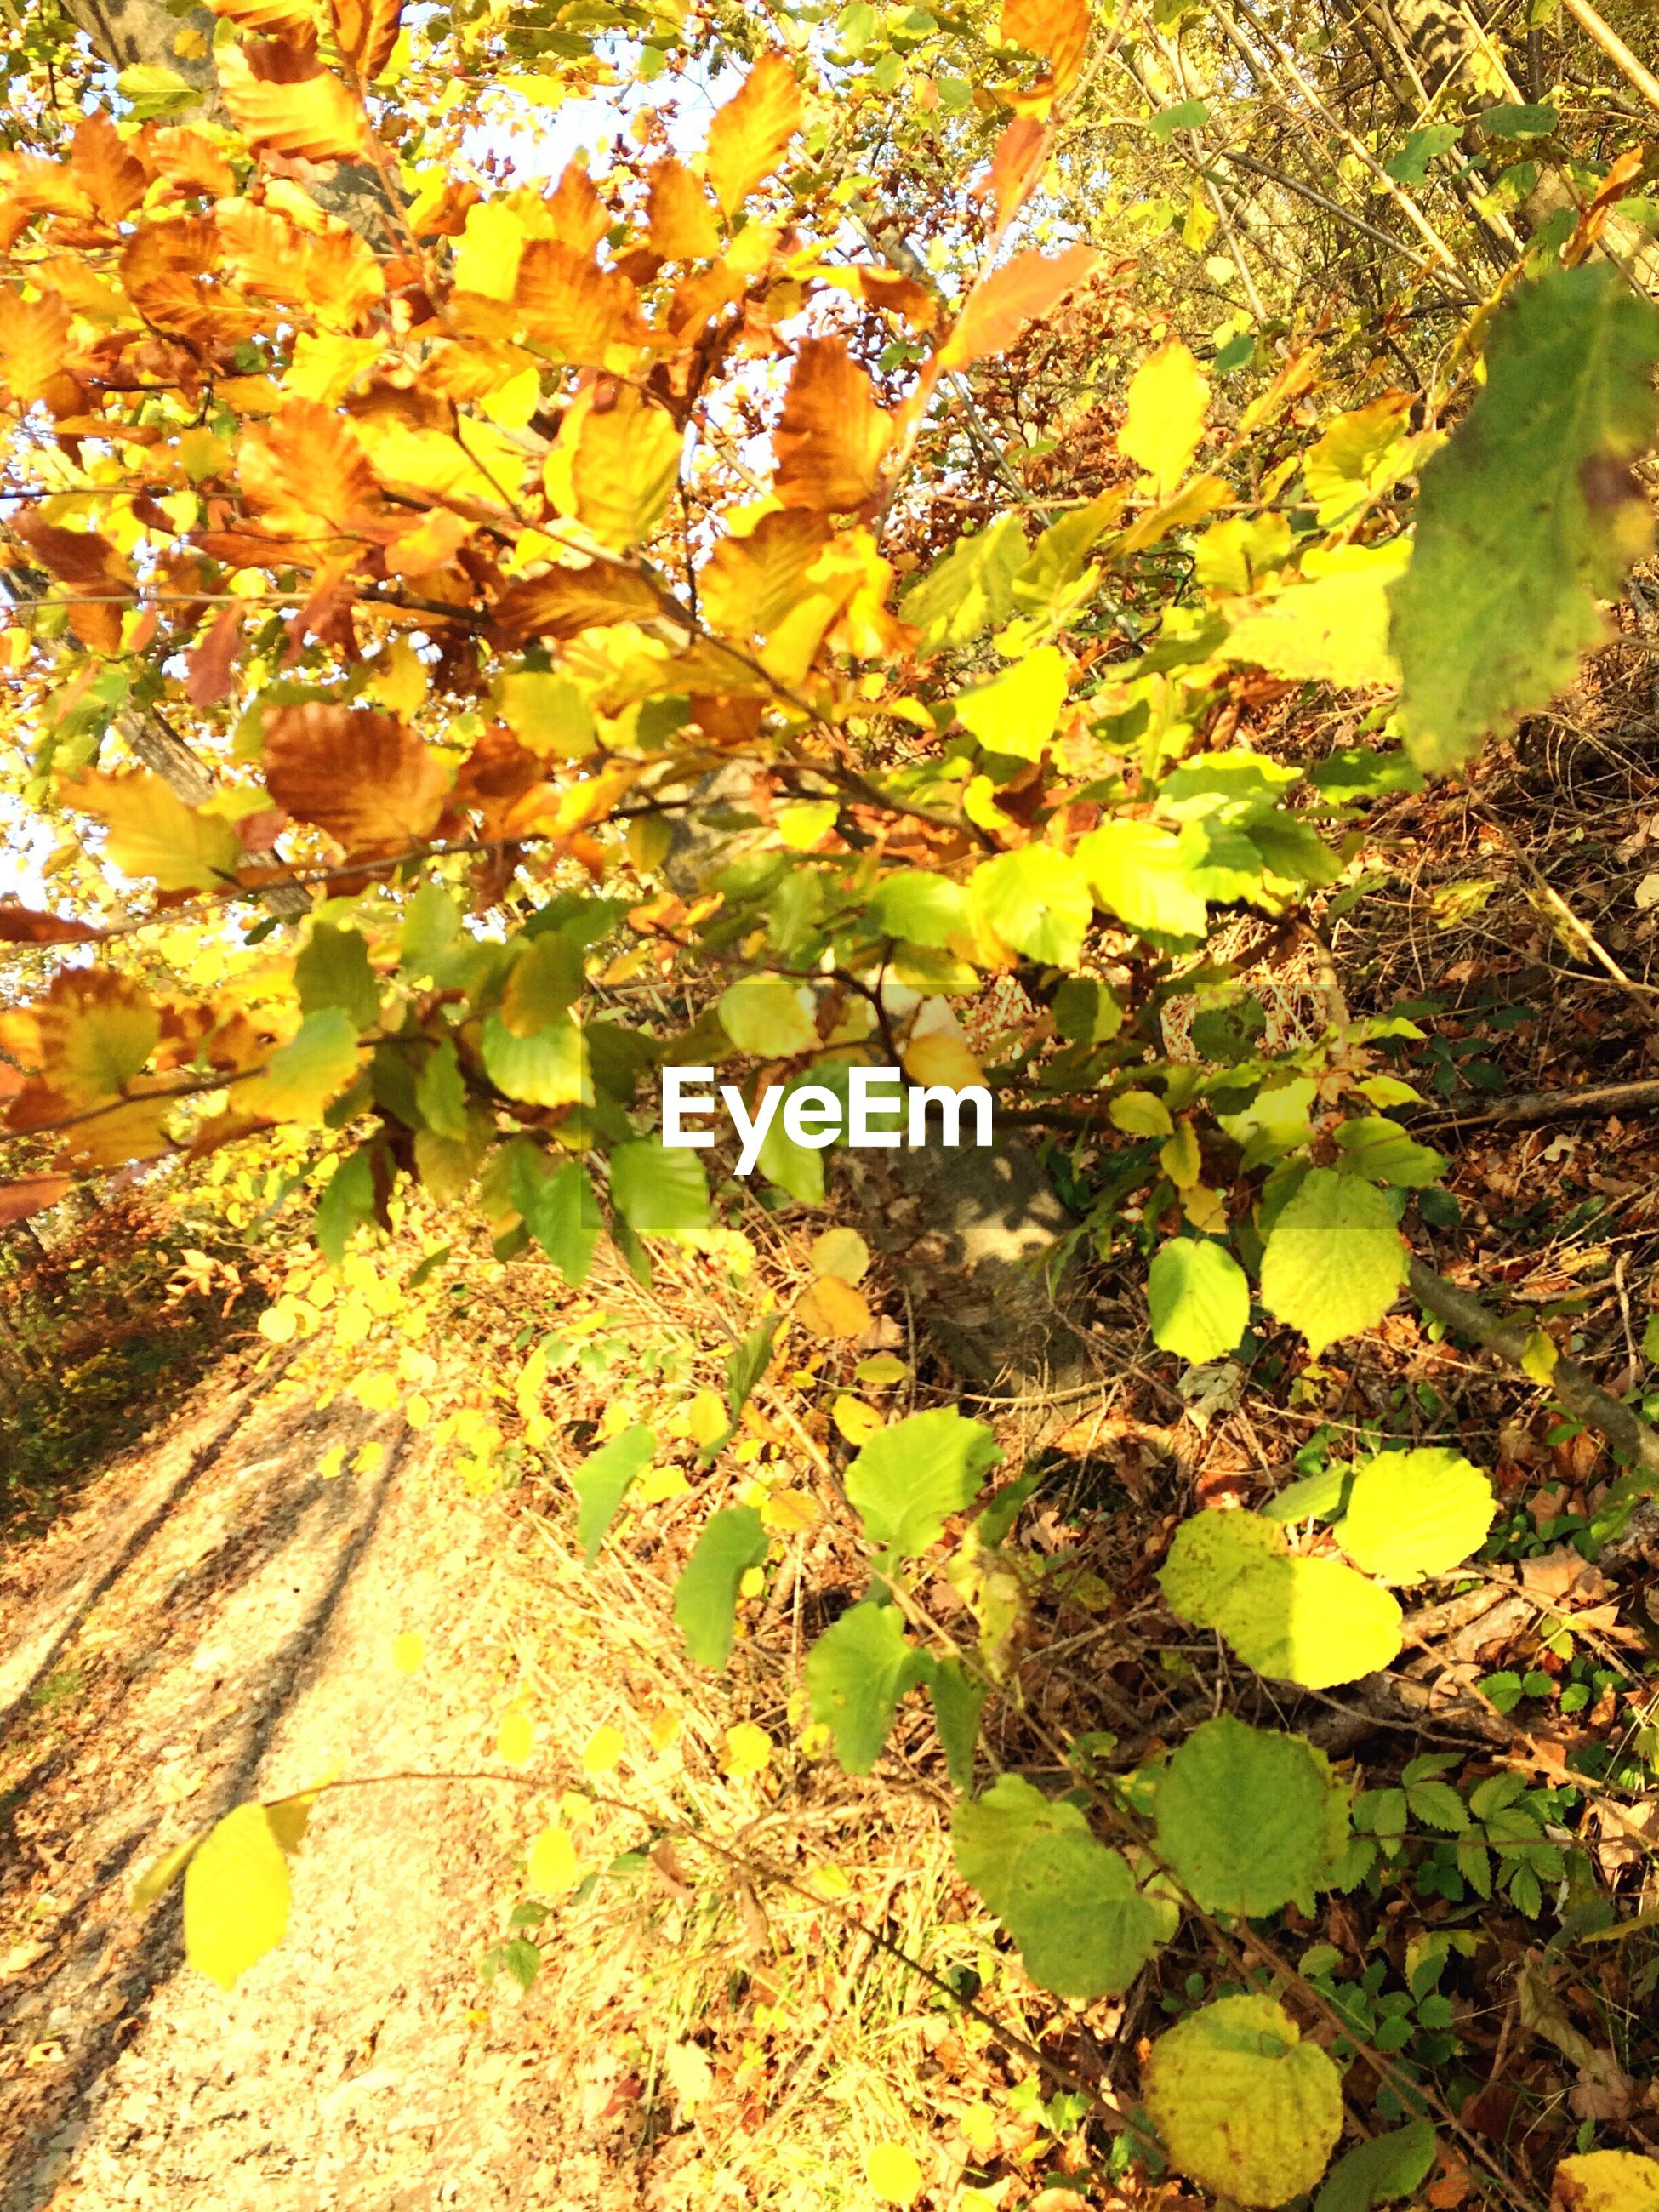 nature, leaf, growth, autumn, no people, plant, outdoors, yellow, tranquility, day, change, beauty in nature, close-up, tree, maple